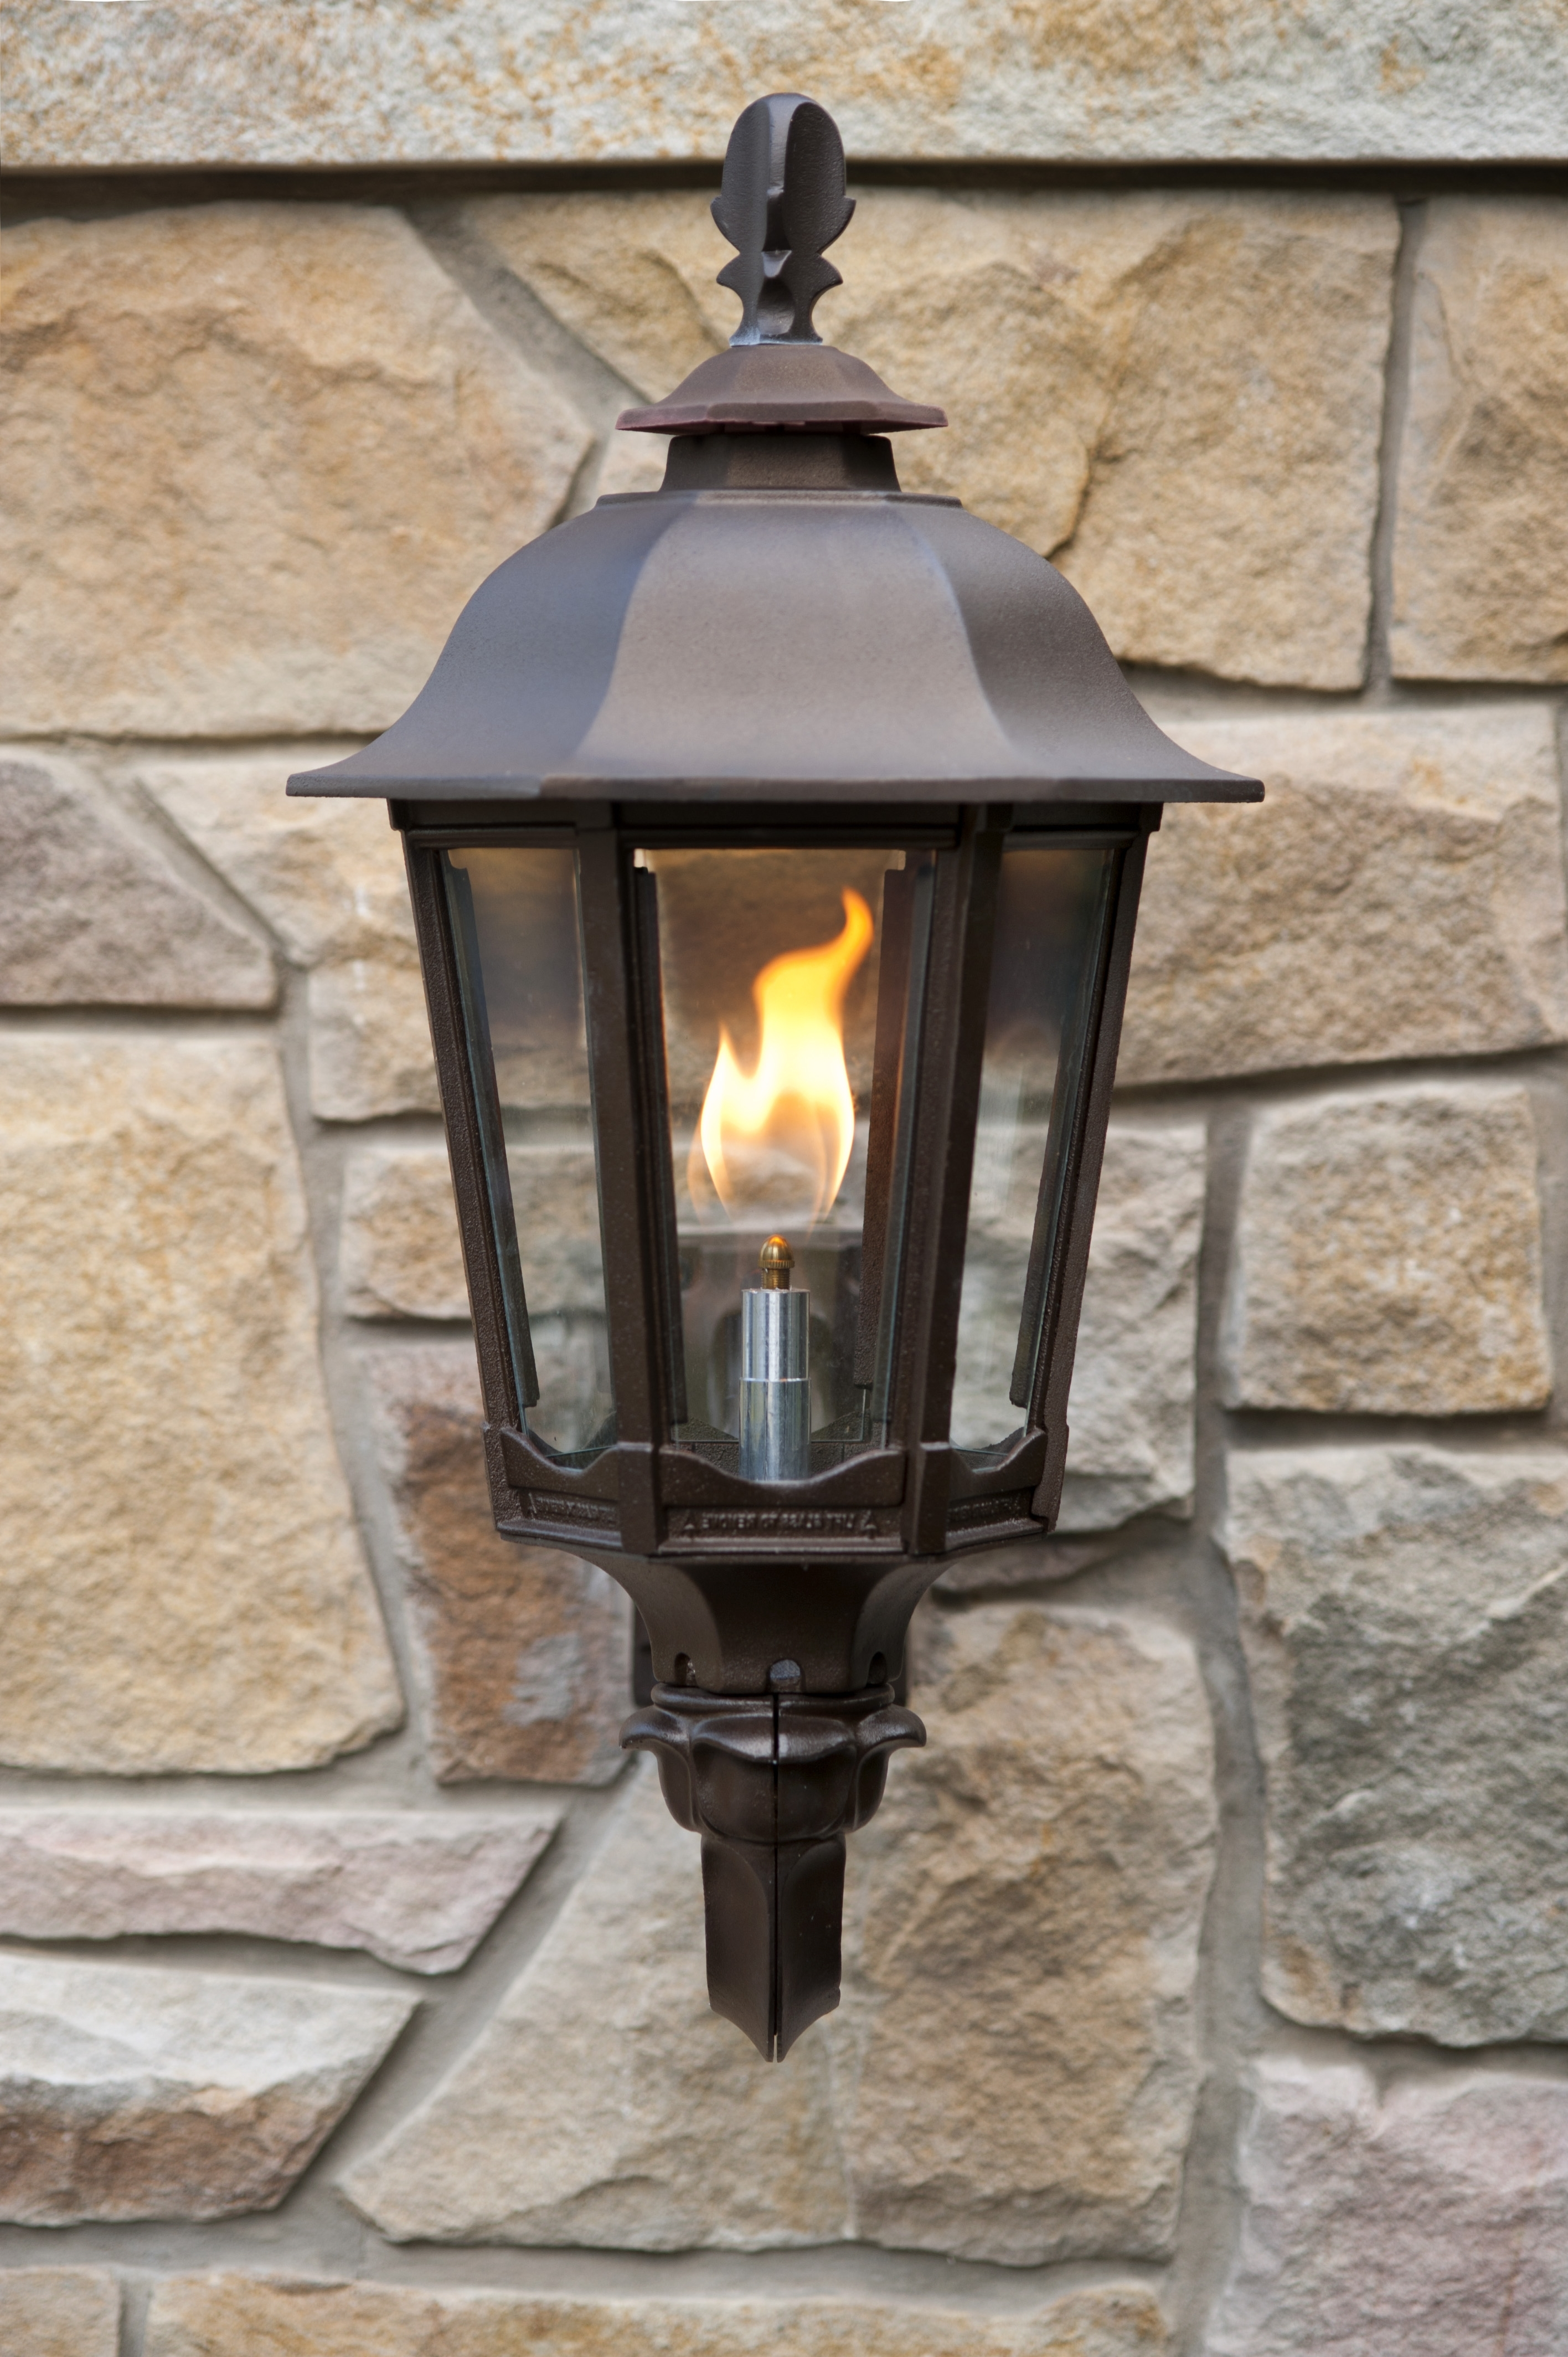 2019 Outdoor Wall Gas Lights In Sumptuous Design Gas Light Fixtures Amazing Ideas Wall Mounted (View 3 of 20)